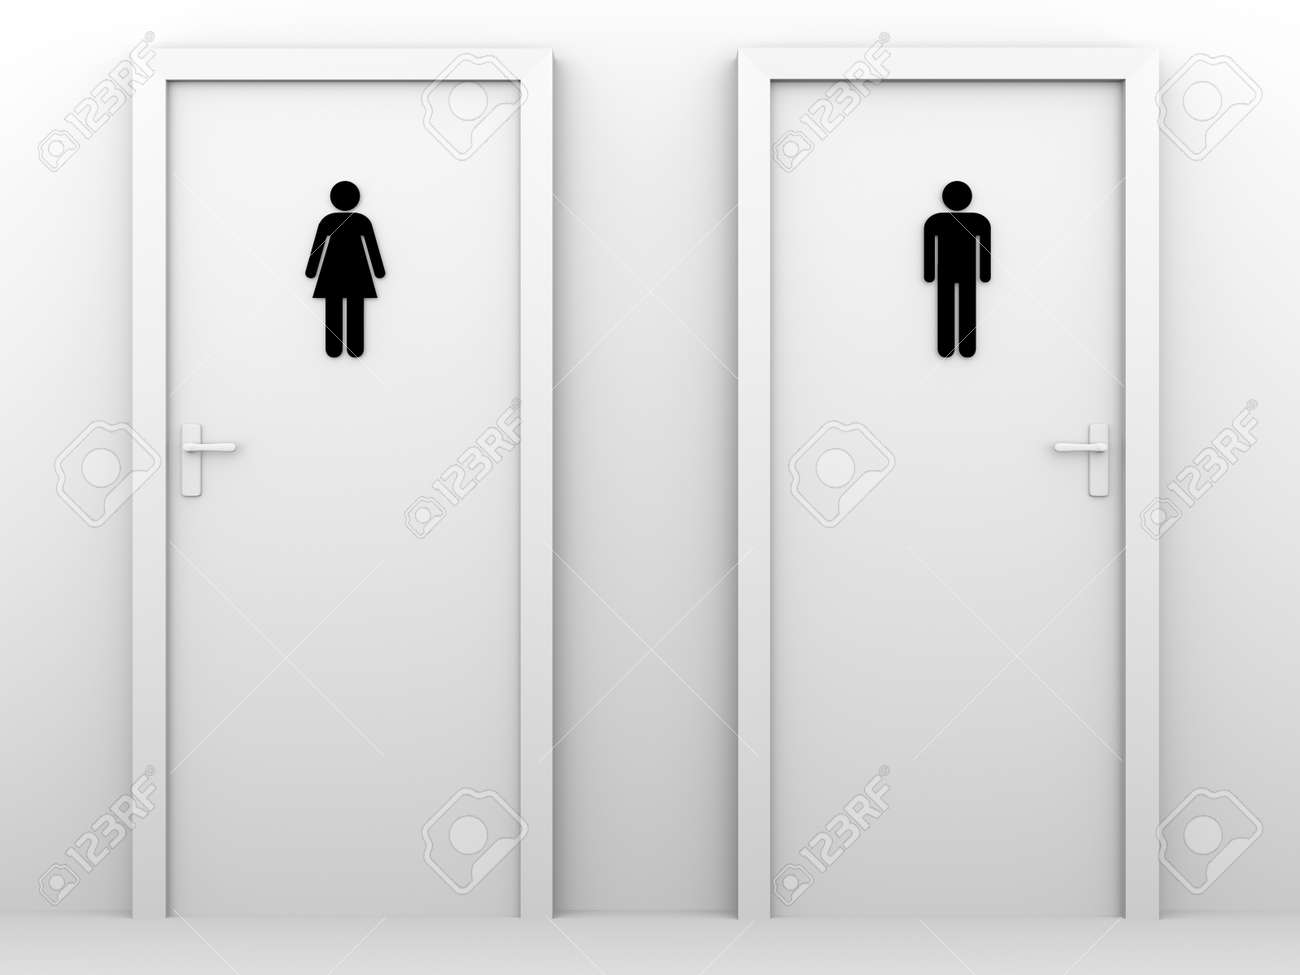 toilet doors for male and female genders Stock Photo - 12700751